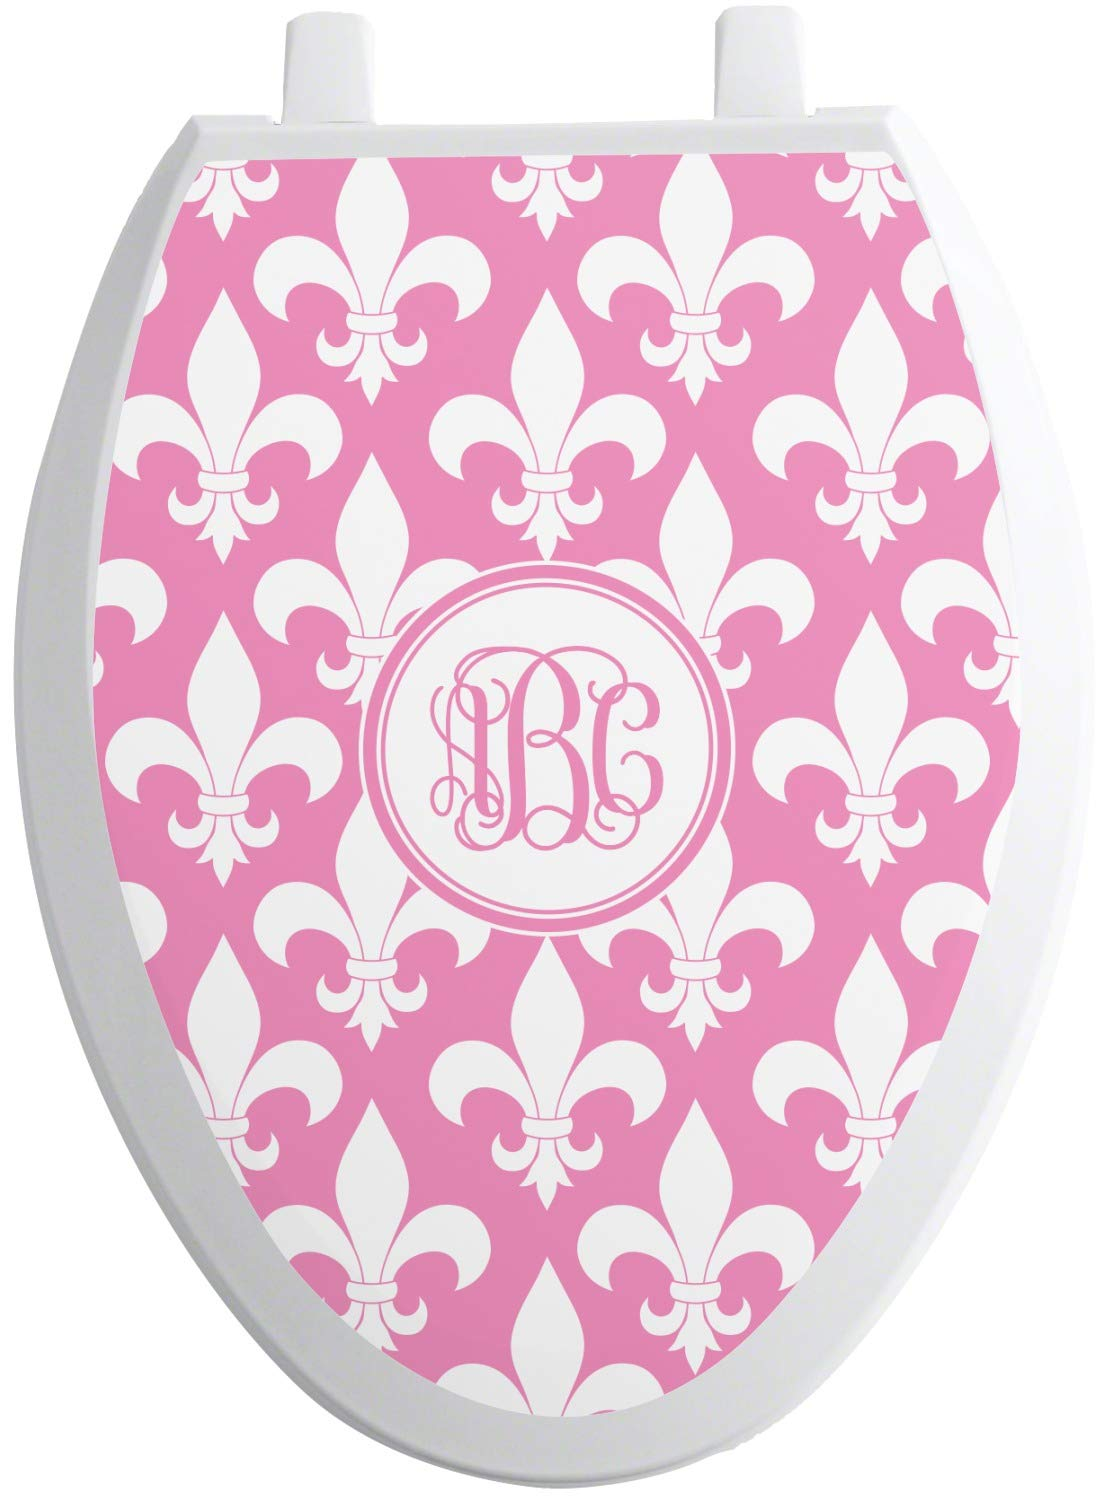 RNK Shops Fleur De Lis Toilet Seat Decal - Elongated (Personalized) by RNK Shops